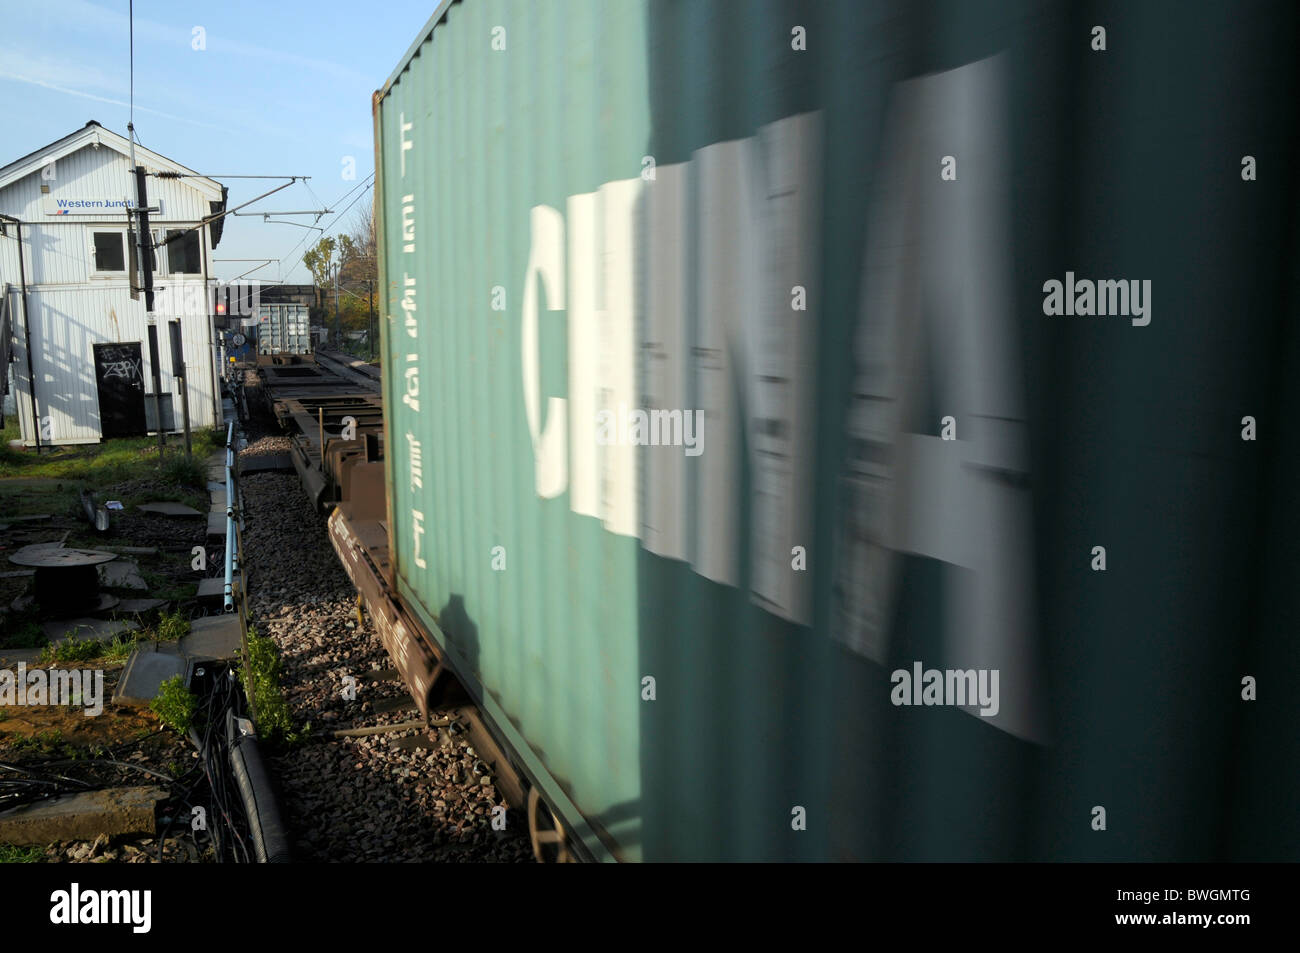 UK. CONTAINER CARRYING GOODS FROM CHINA ON FREIGHT TRAIN IN LONDON OVERGROUND LINE - Stock Image